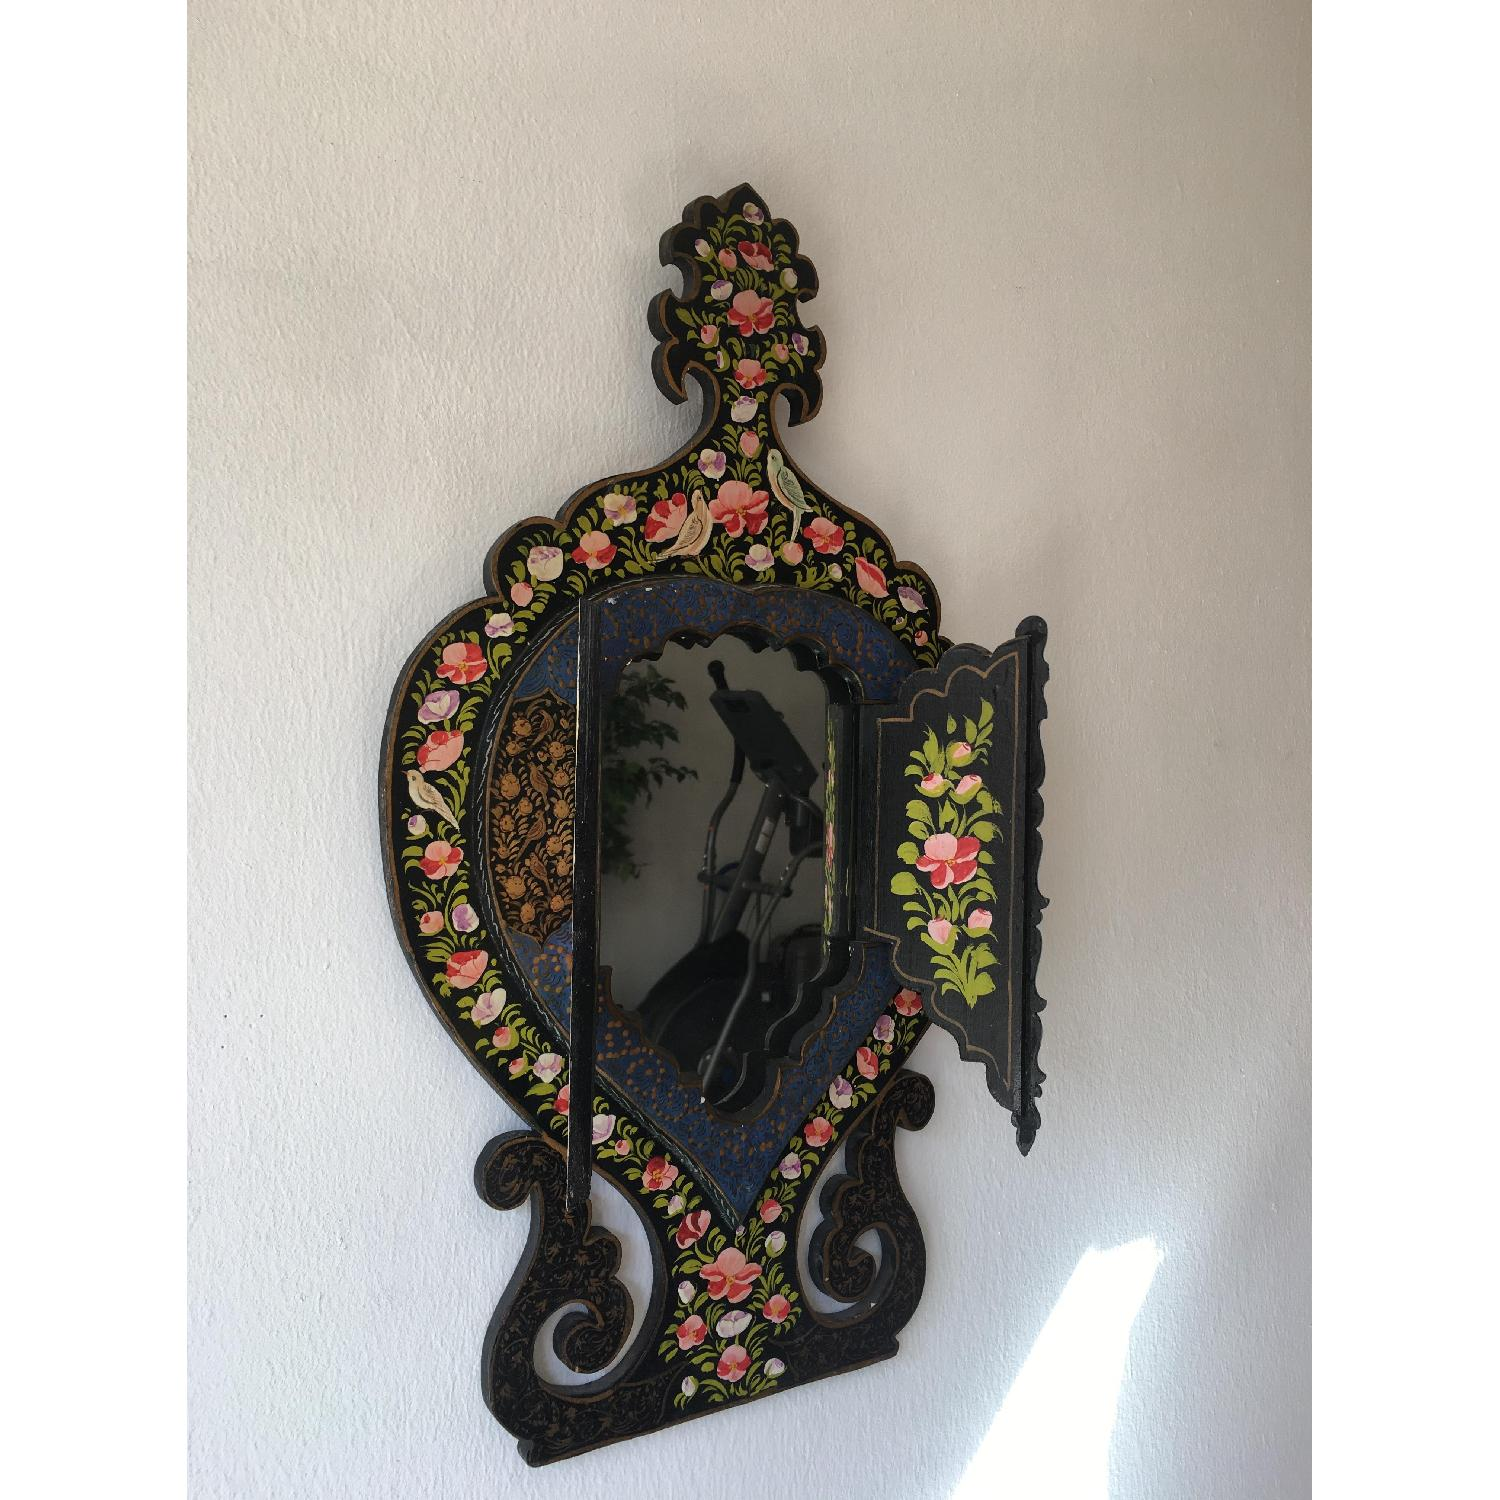 Antique Small Hand Painted Wooden Persian Mirror Frame - image-2